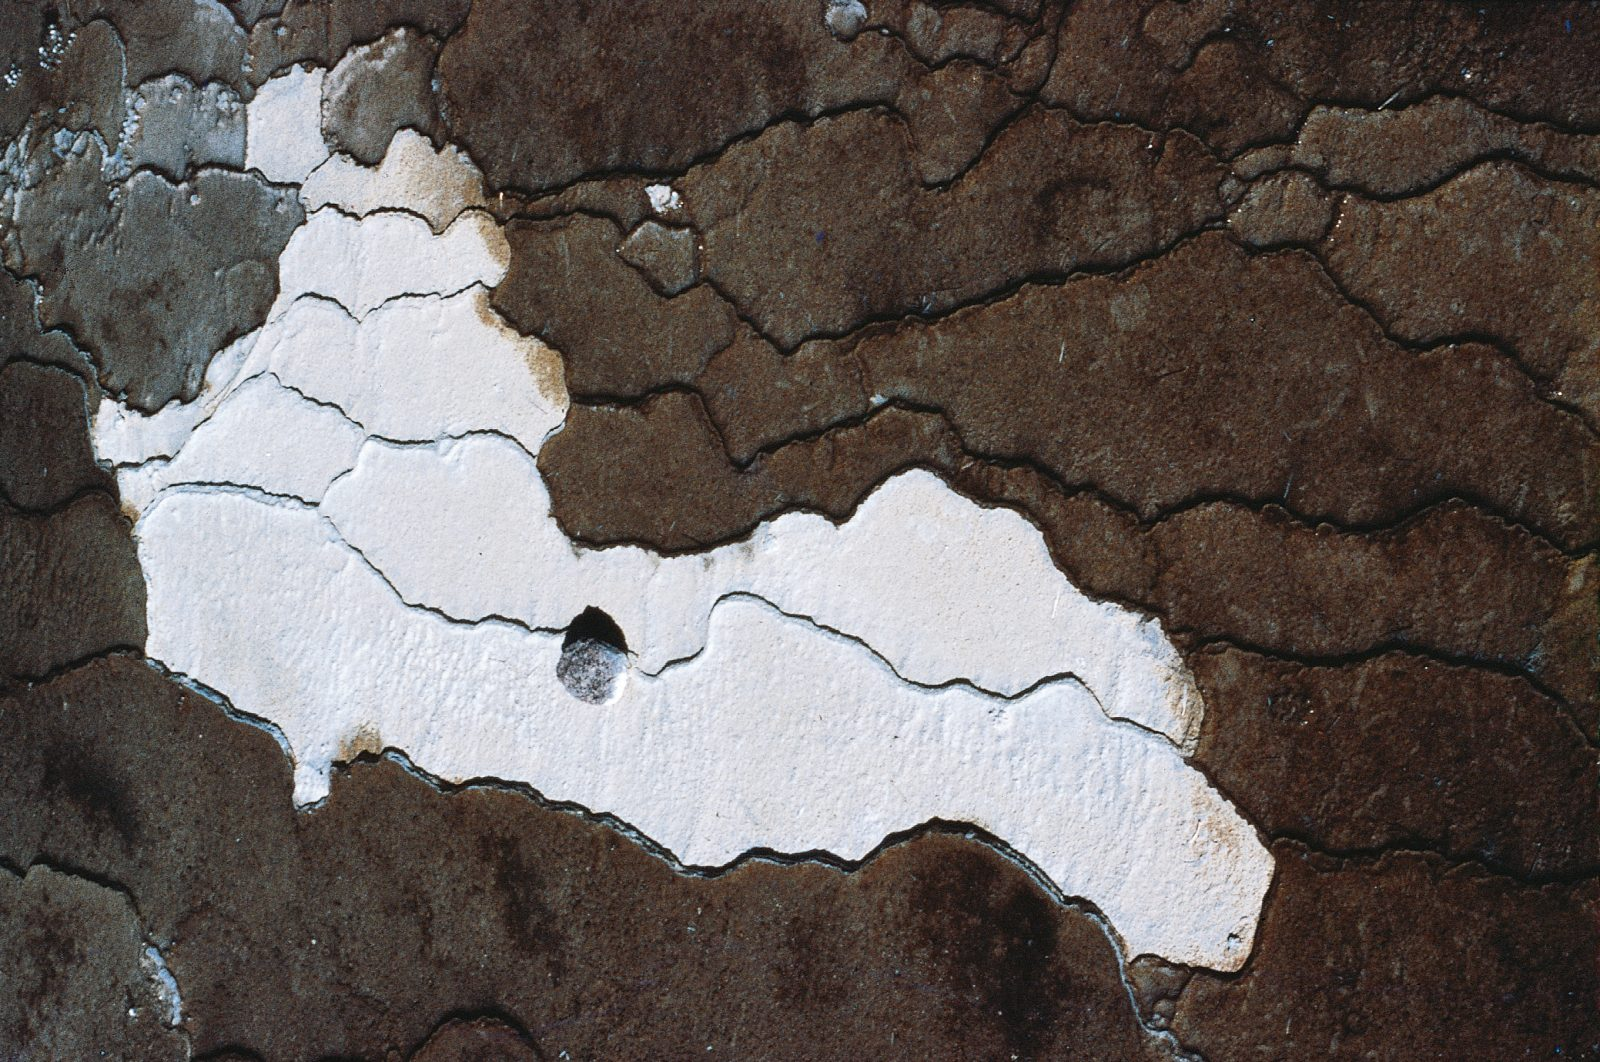 A stone thrown casually into a sinter terrace at Waiotapu has been cemented where it fell by the silica-containing water. The white areas are dry ponds surrounded by algae-coloured, water-filled ponds.